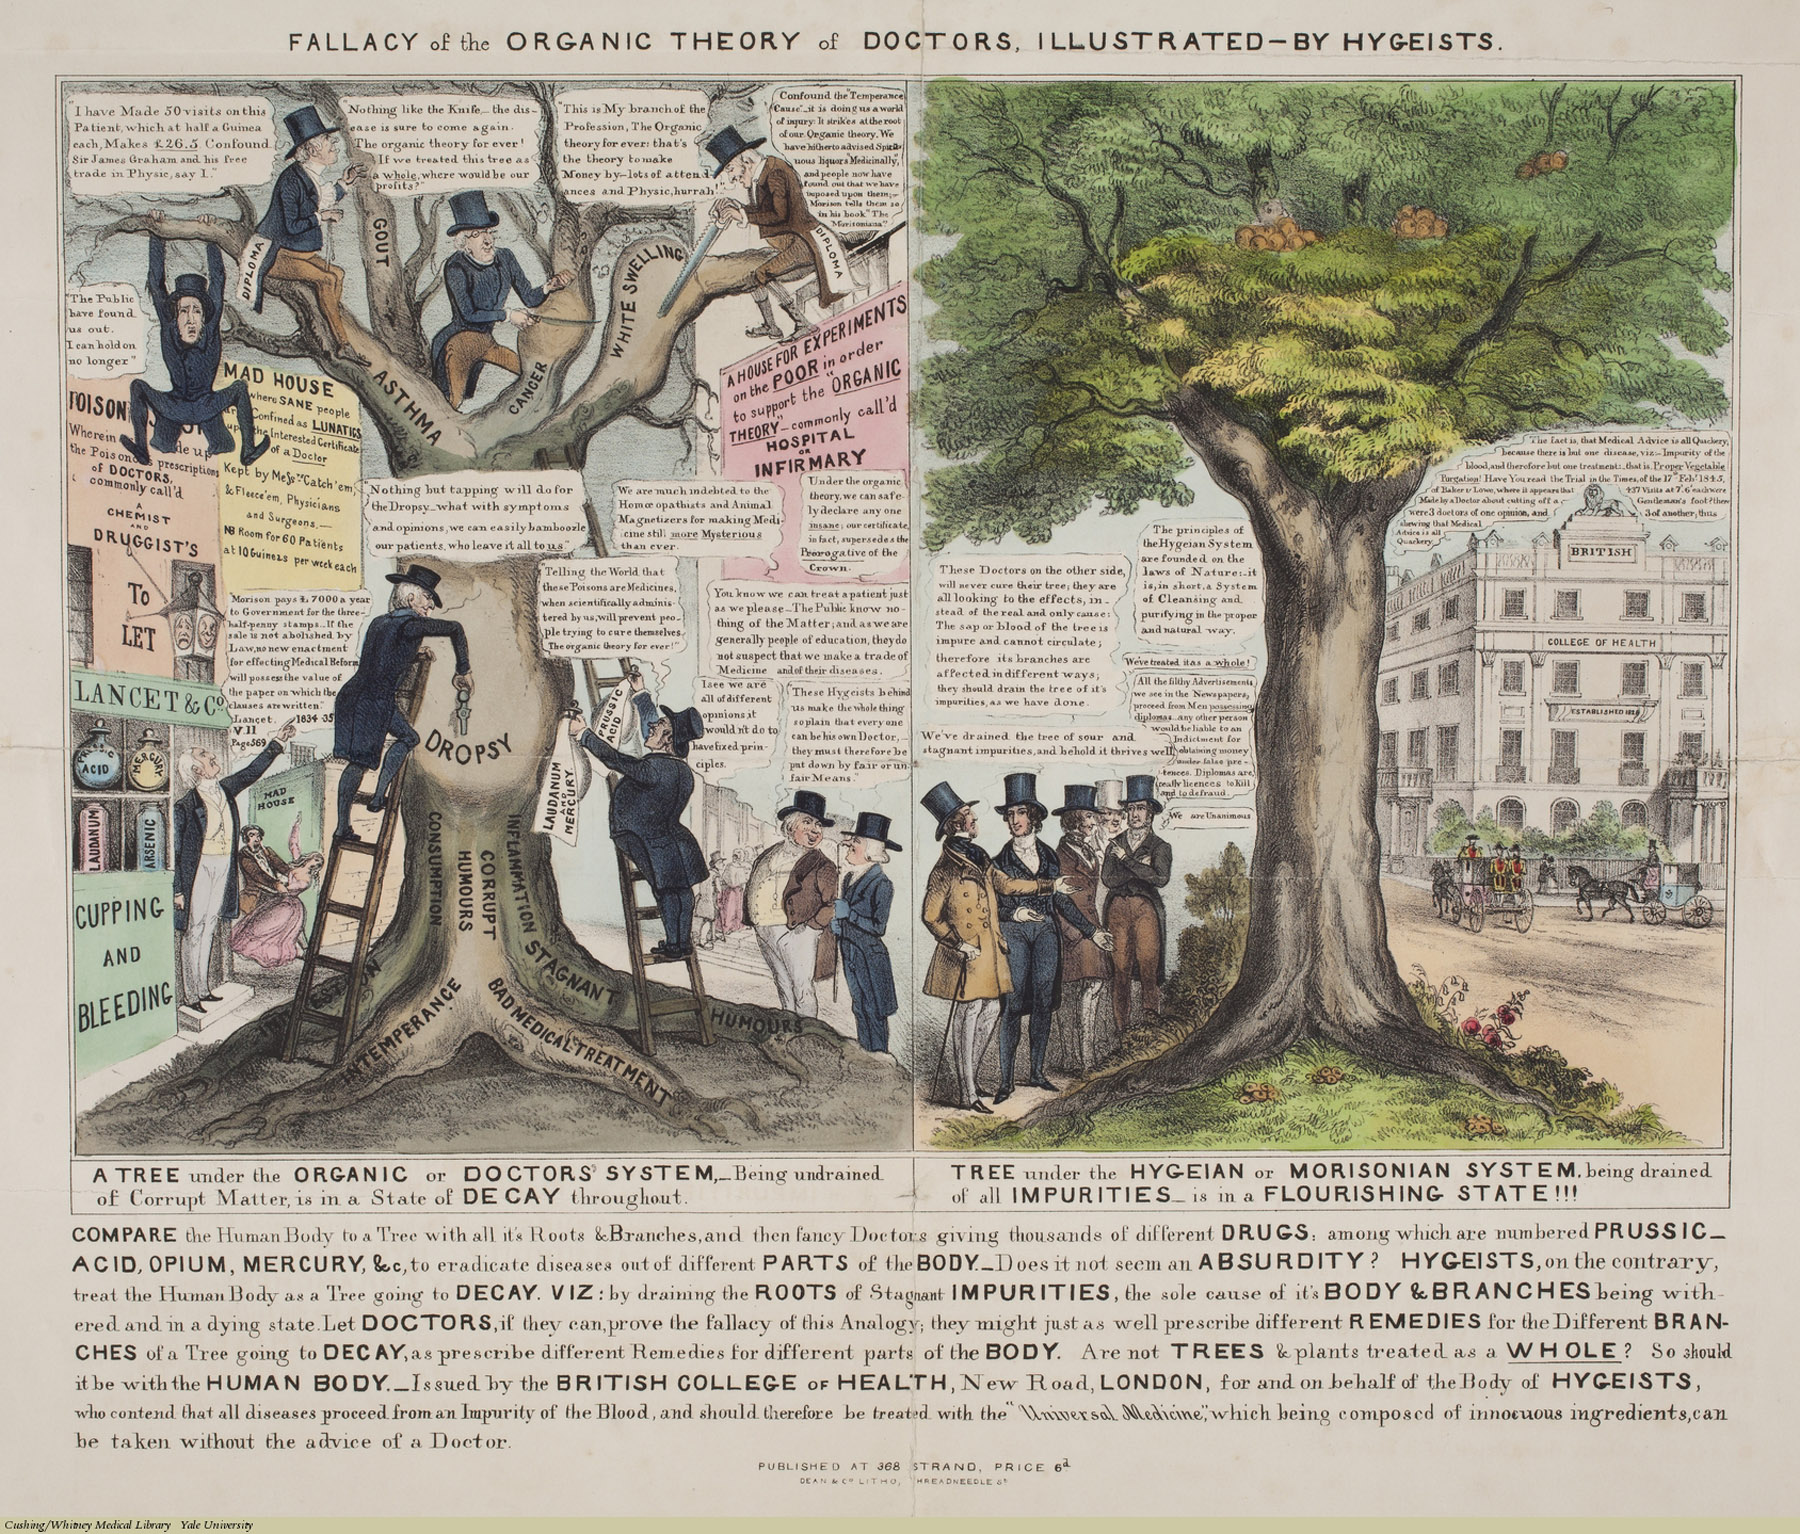 FALLACY of the ORGANIC THEORY of DOCTORS, ILLUSTRATED-BY HYGEISTS. Anonymous, Lithograph coloured. Subject: Proprietary Remedies, James Morison (1770-1840), James Graham, The Lancet, Thomas Wakely, Hygeian System, Universal College of Health, Baker vs. Lowe (1845)